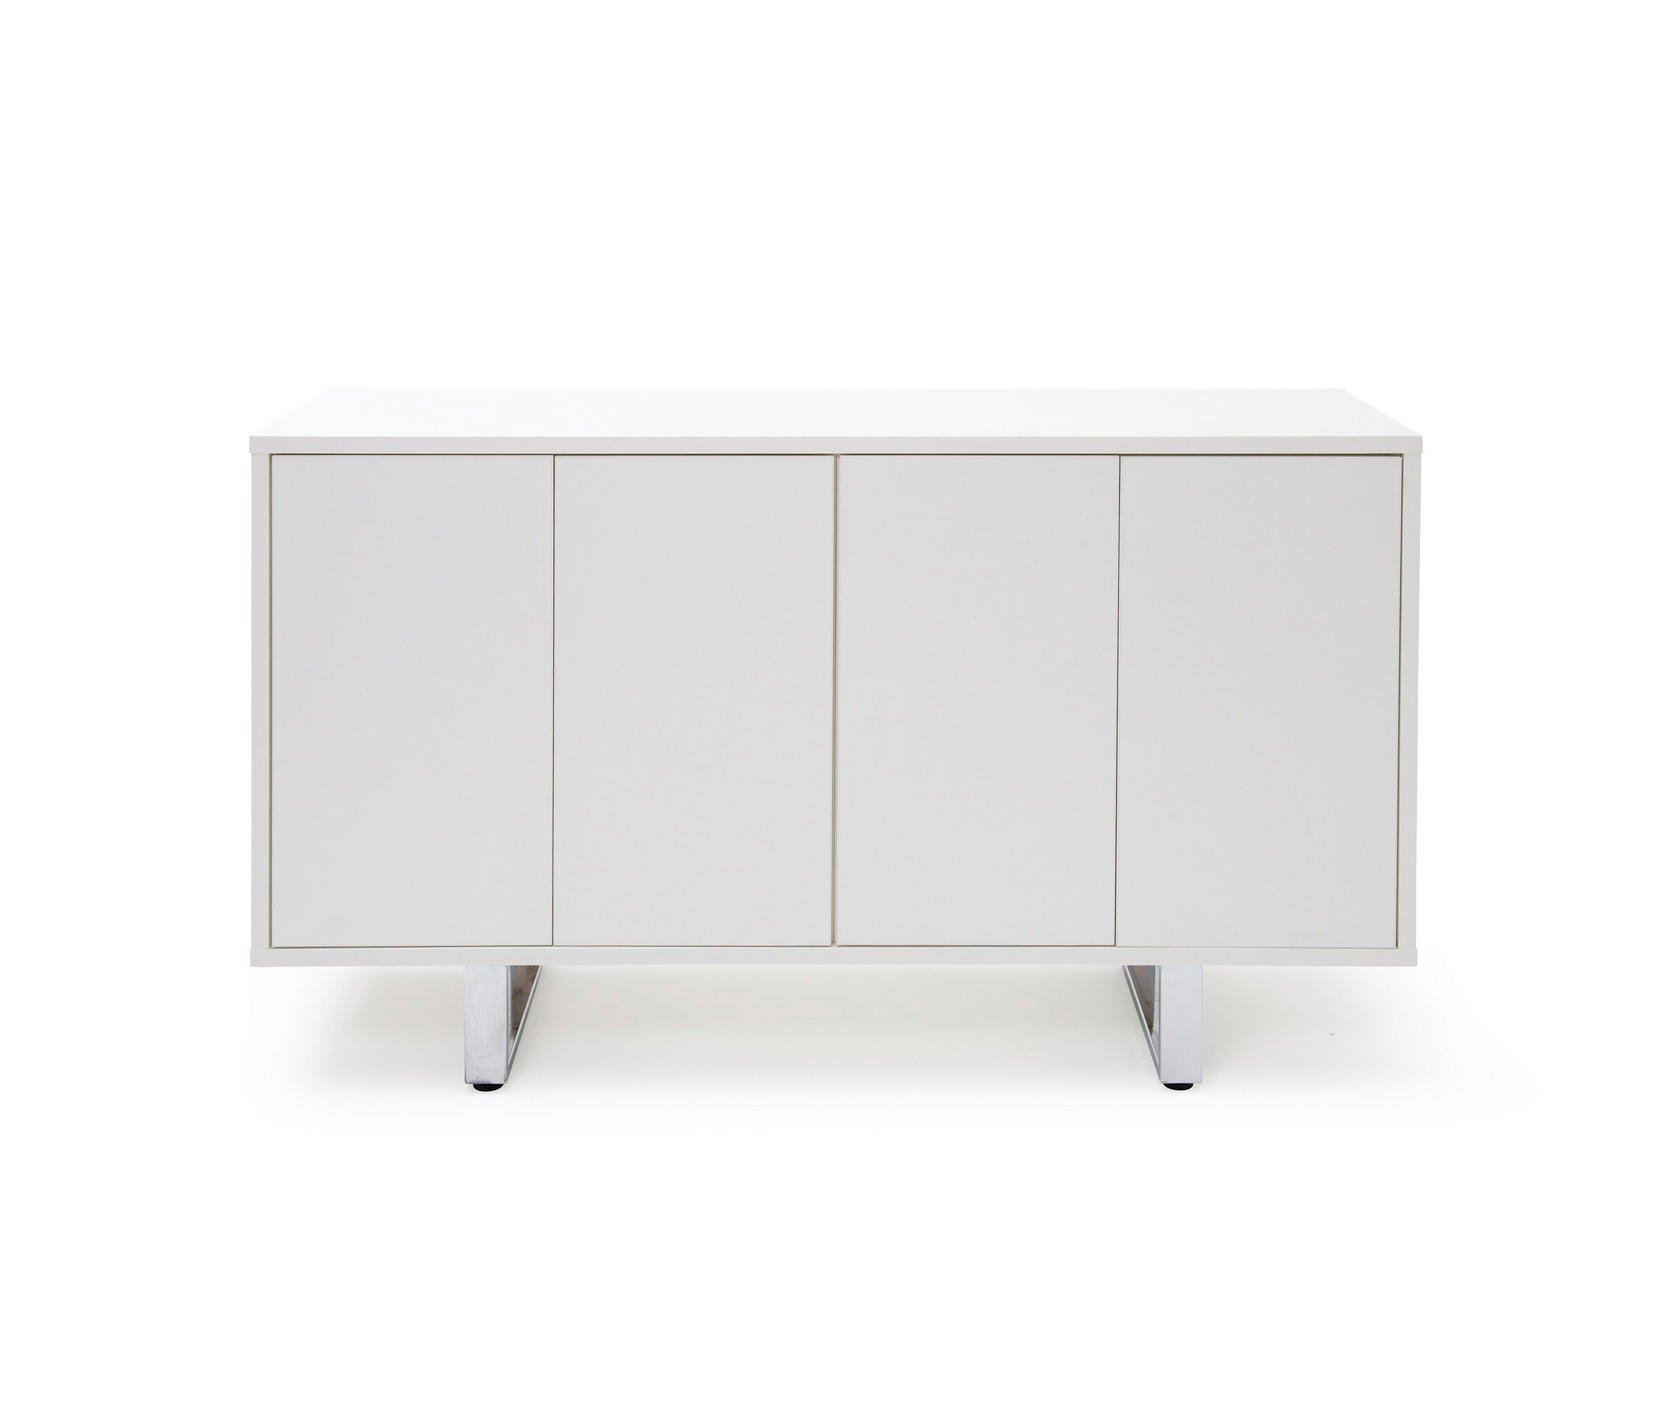 Andante - Sideboards / Kommoden Von Spacestor | Architonic throughout Palisade Sideboards (Image 1 of 30)